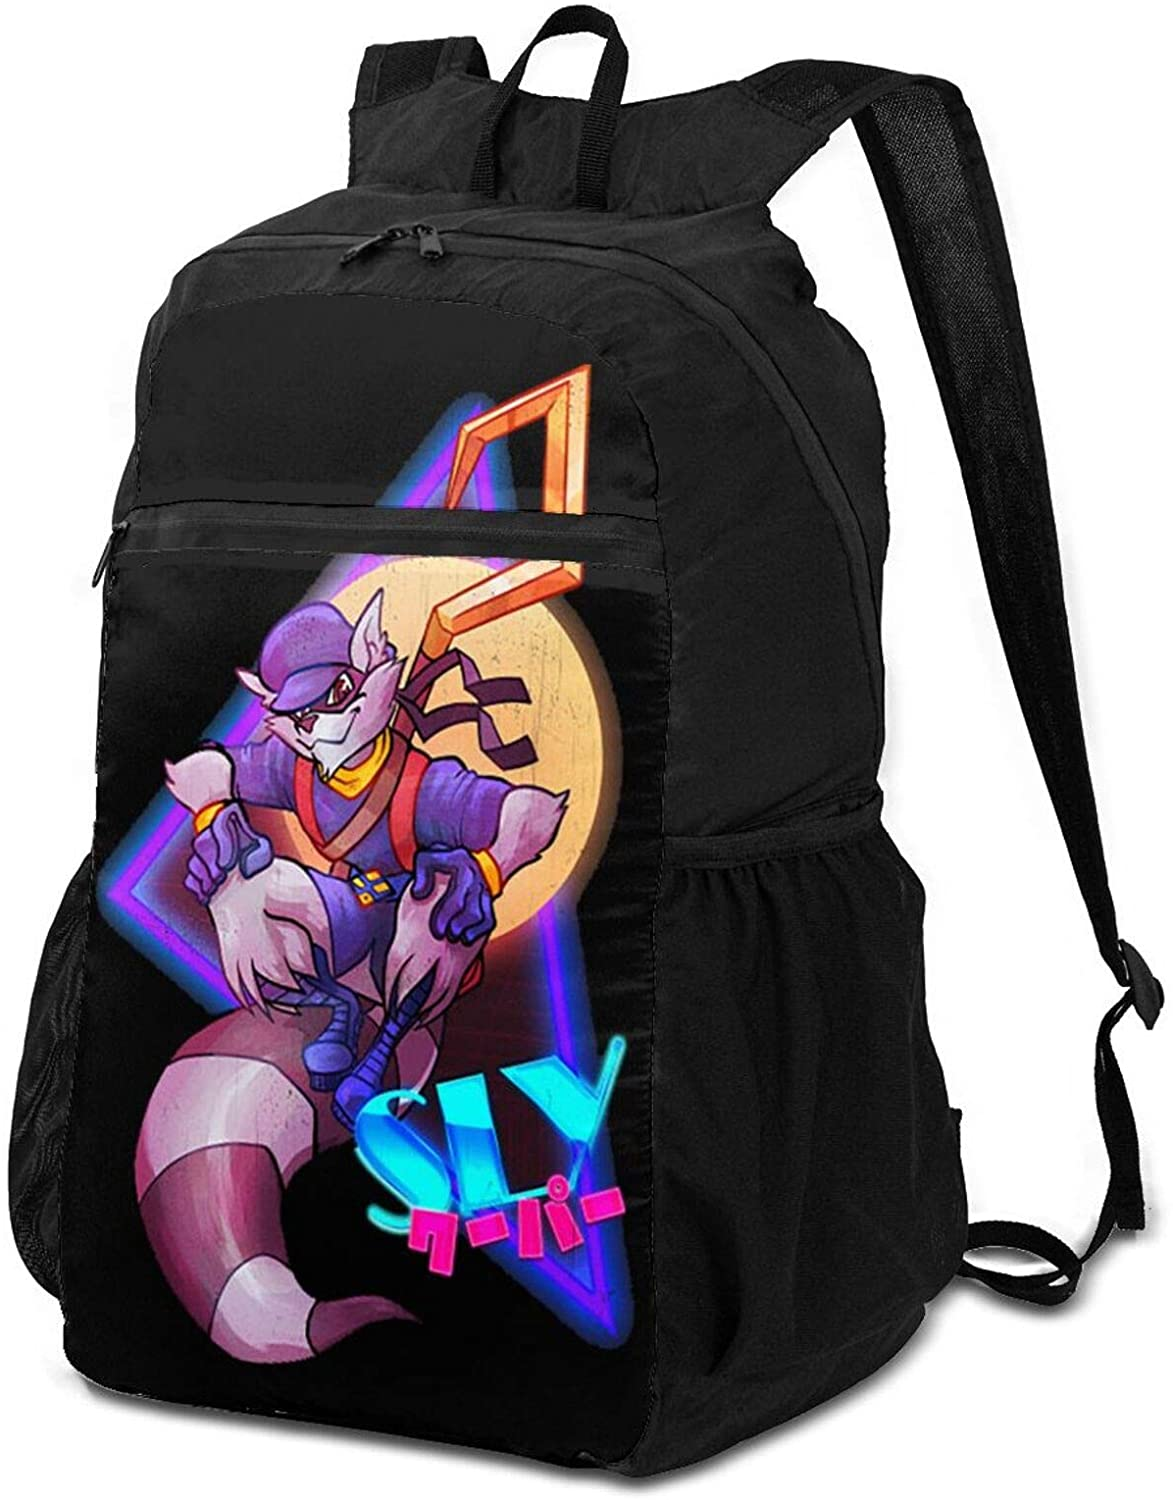 Sly Cooper Logo Outdoor Travel Waterproof And Breathable Folding Backpack